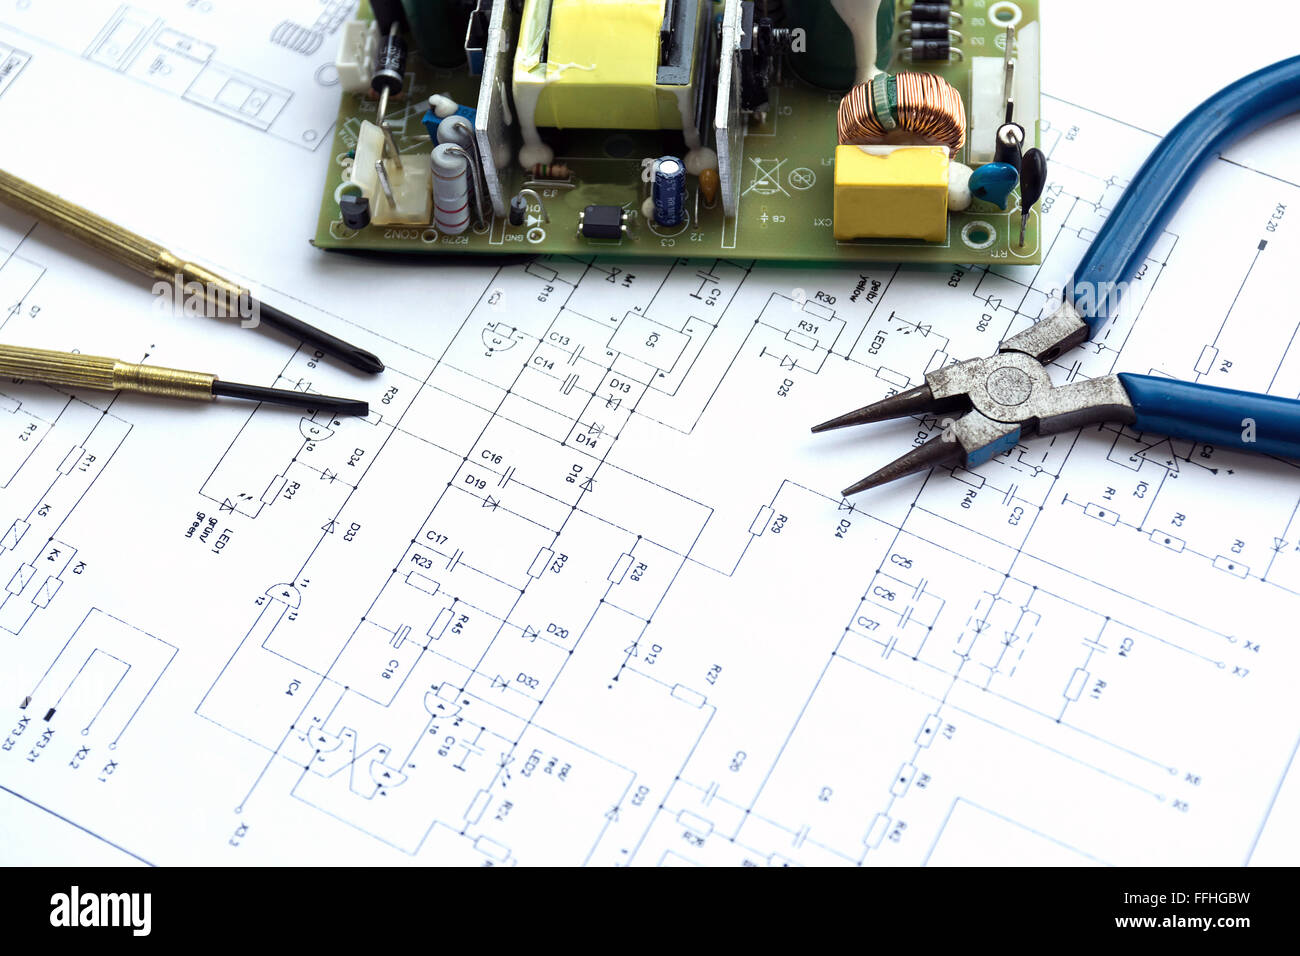 Paper Capacitor Stock Photos Images Alamy Circuit Board Printed With Electrical Component And Precision Tools Lying On Construction Drawing Of Electronics